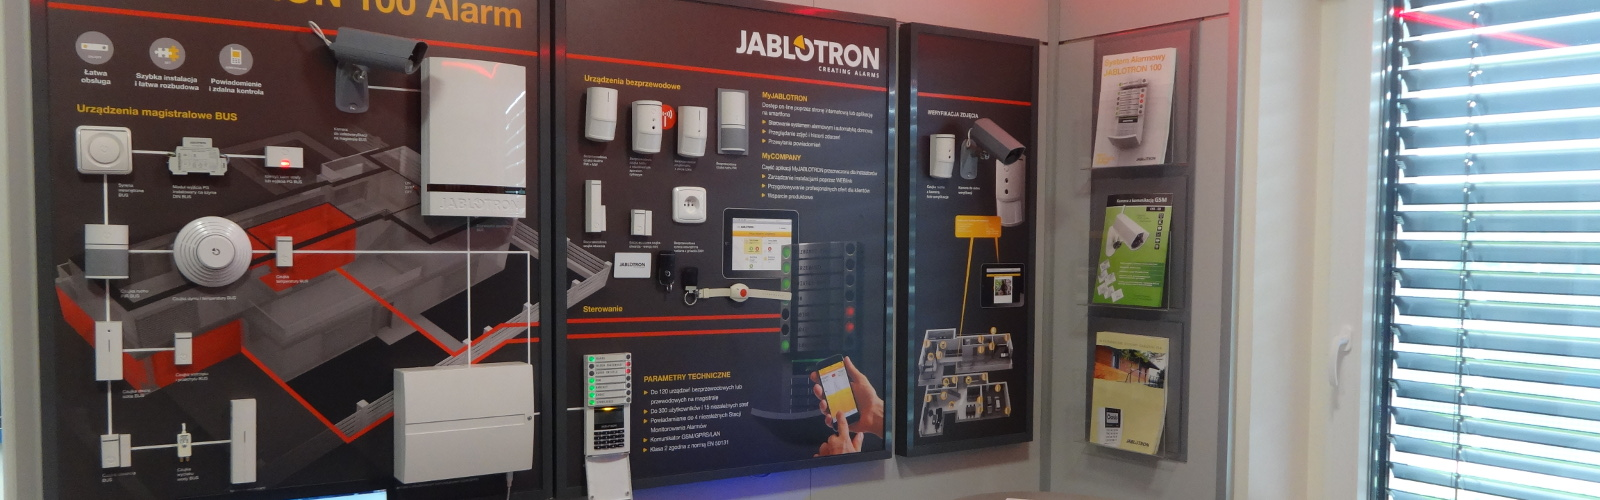 Jablotron Showroom 1